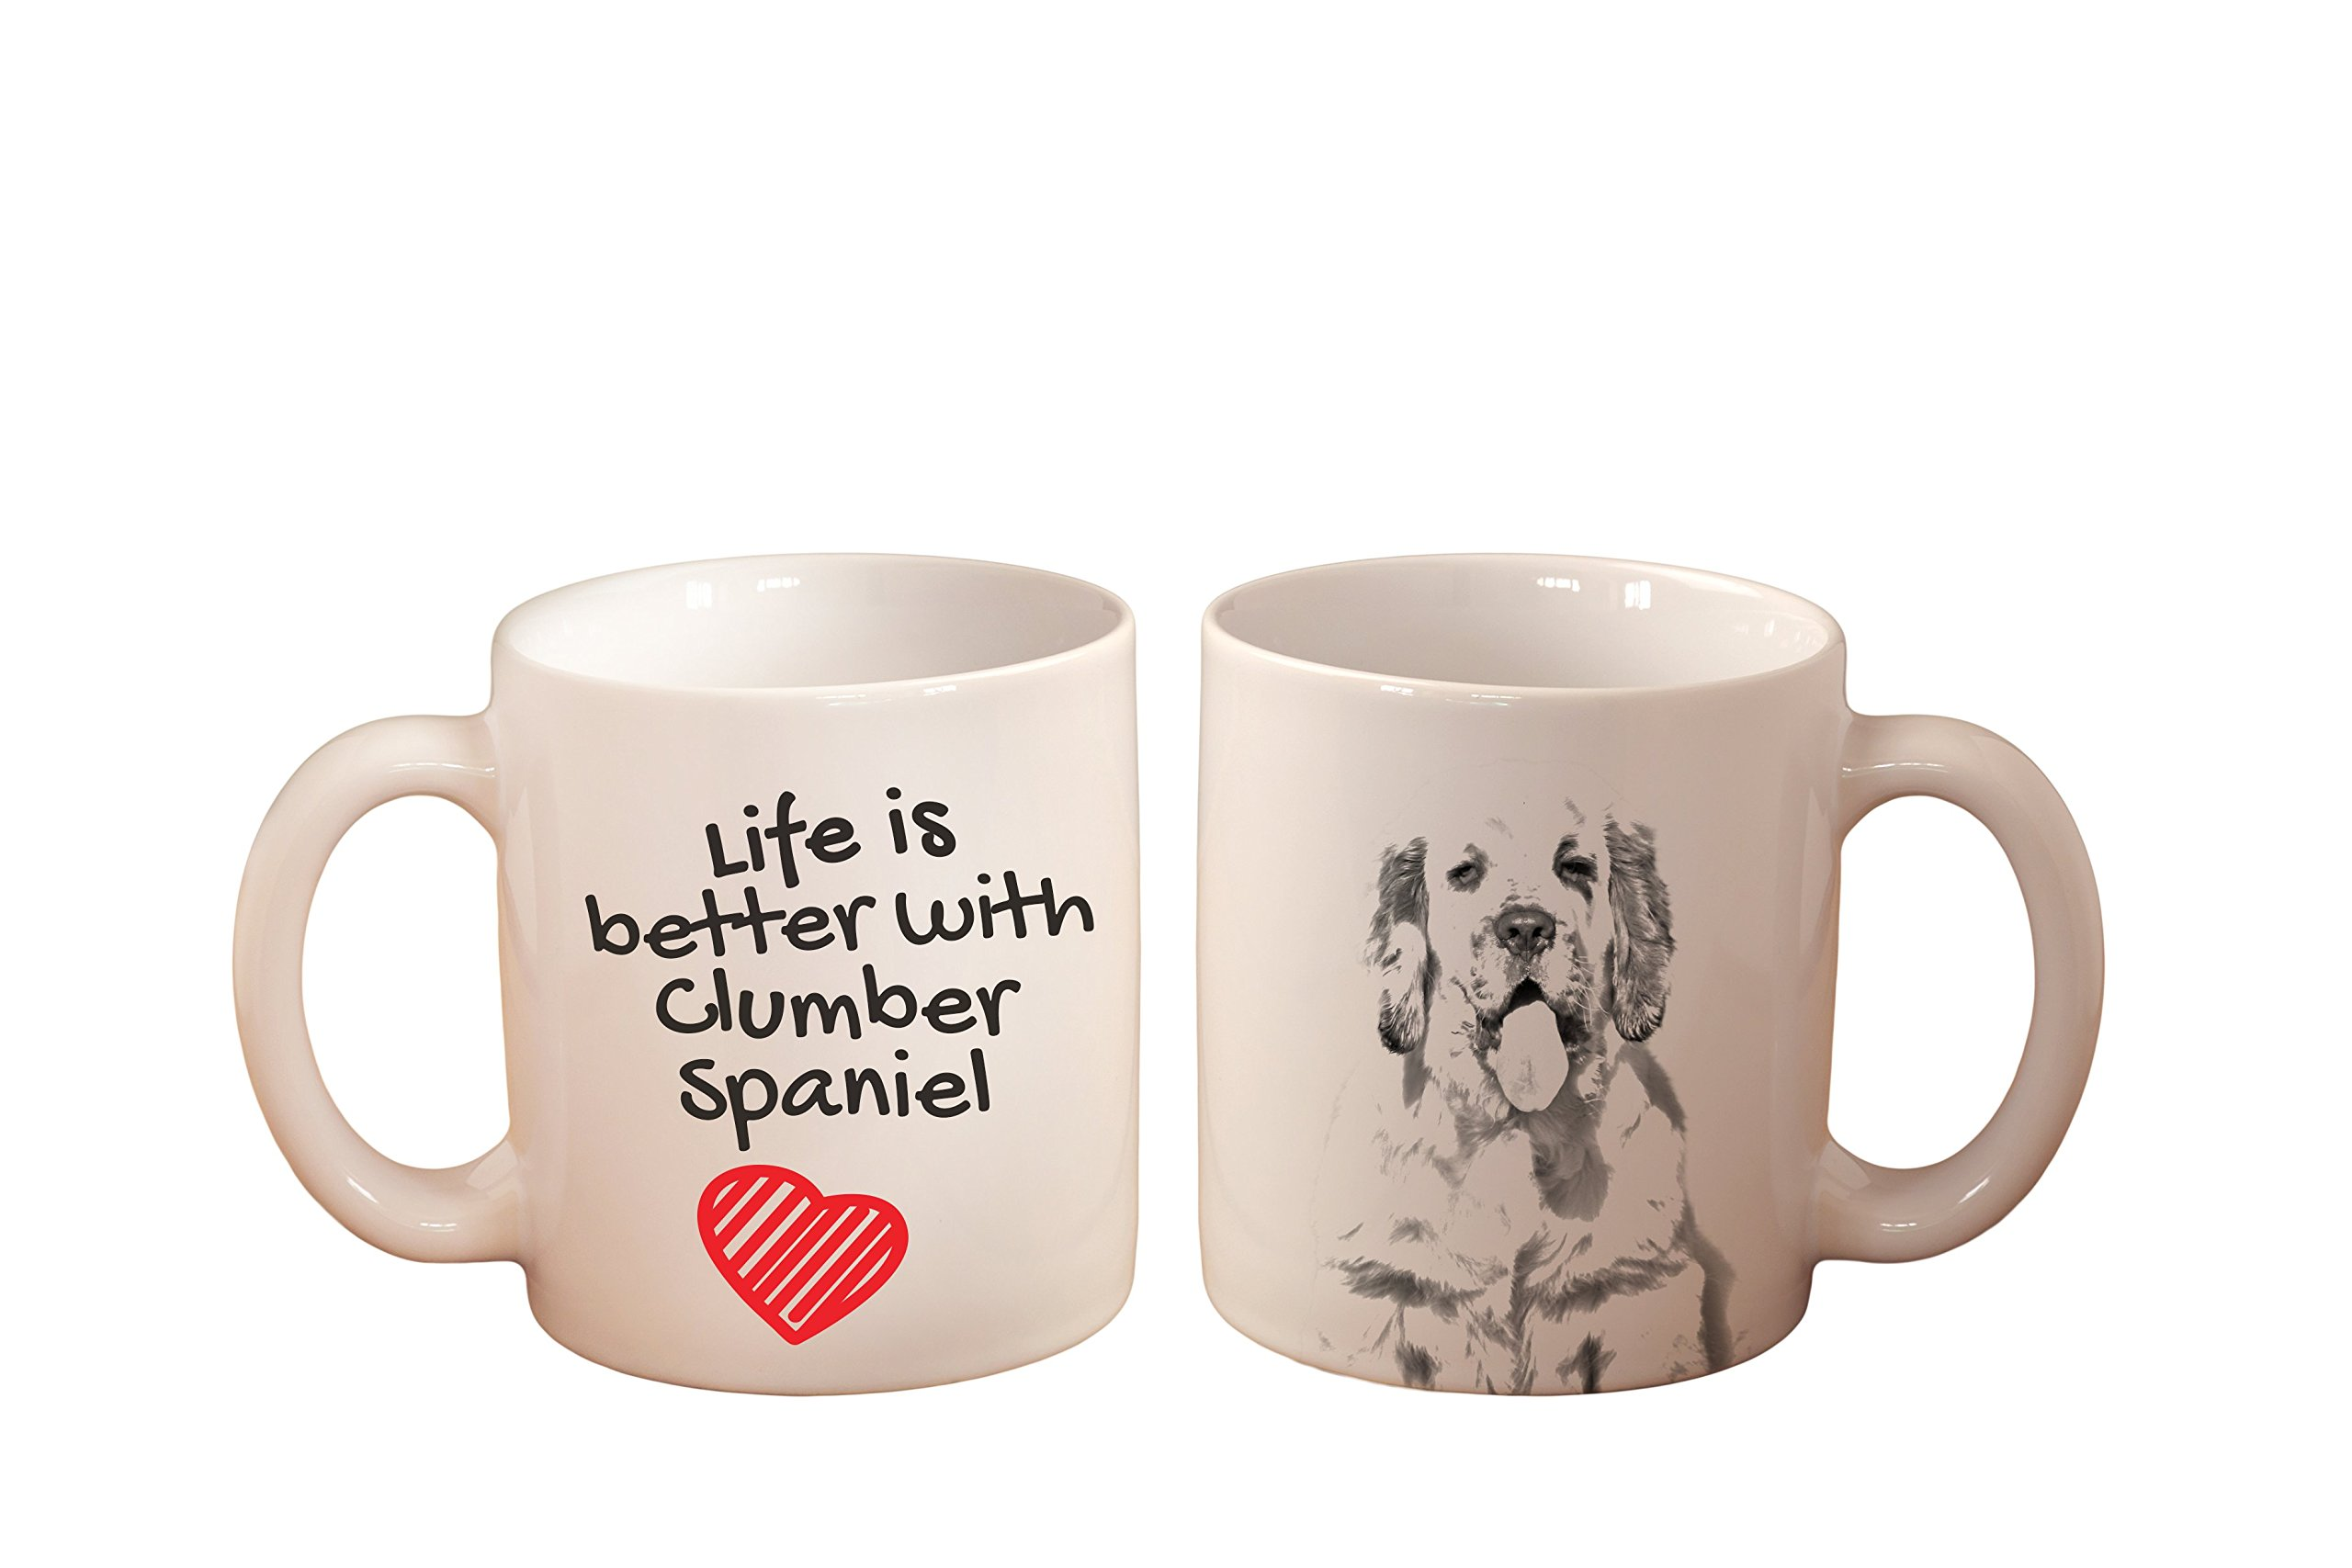 Clumber Spaniel, mug with a dog,, cup, ceramic, new collection 1